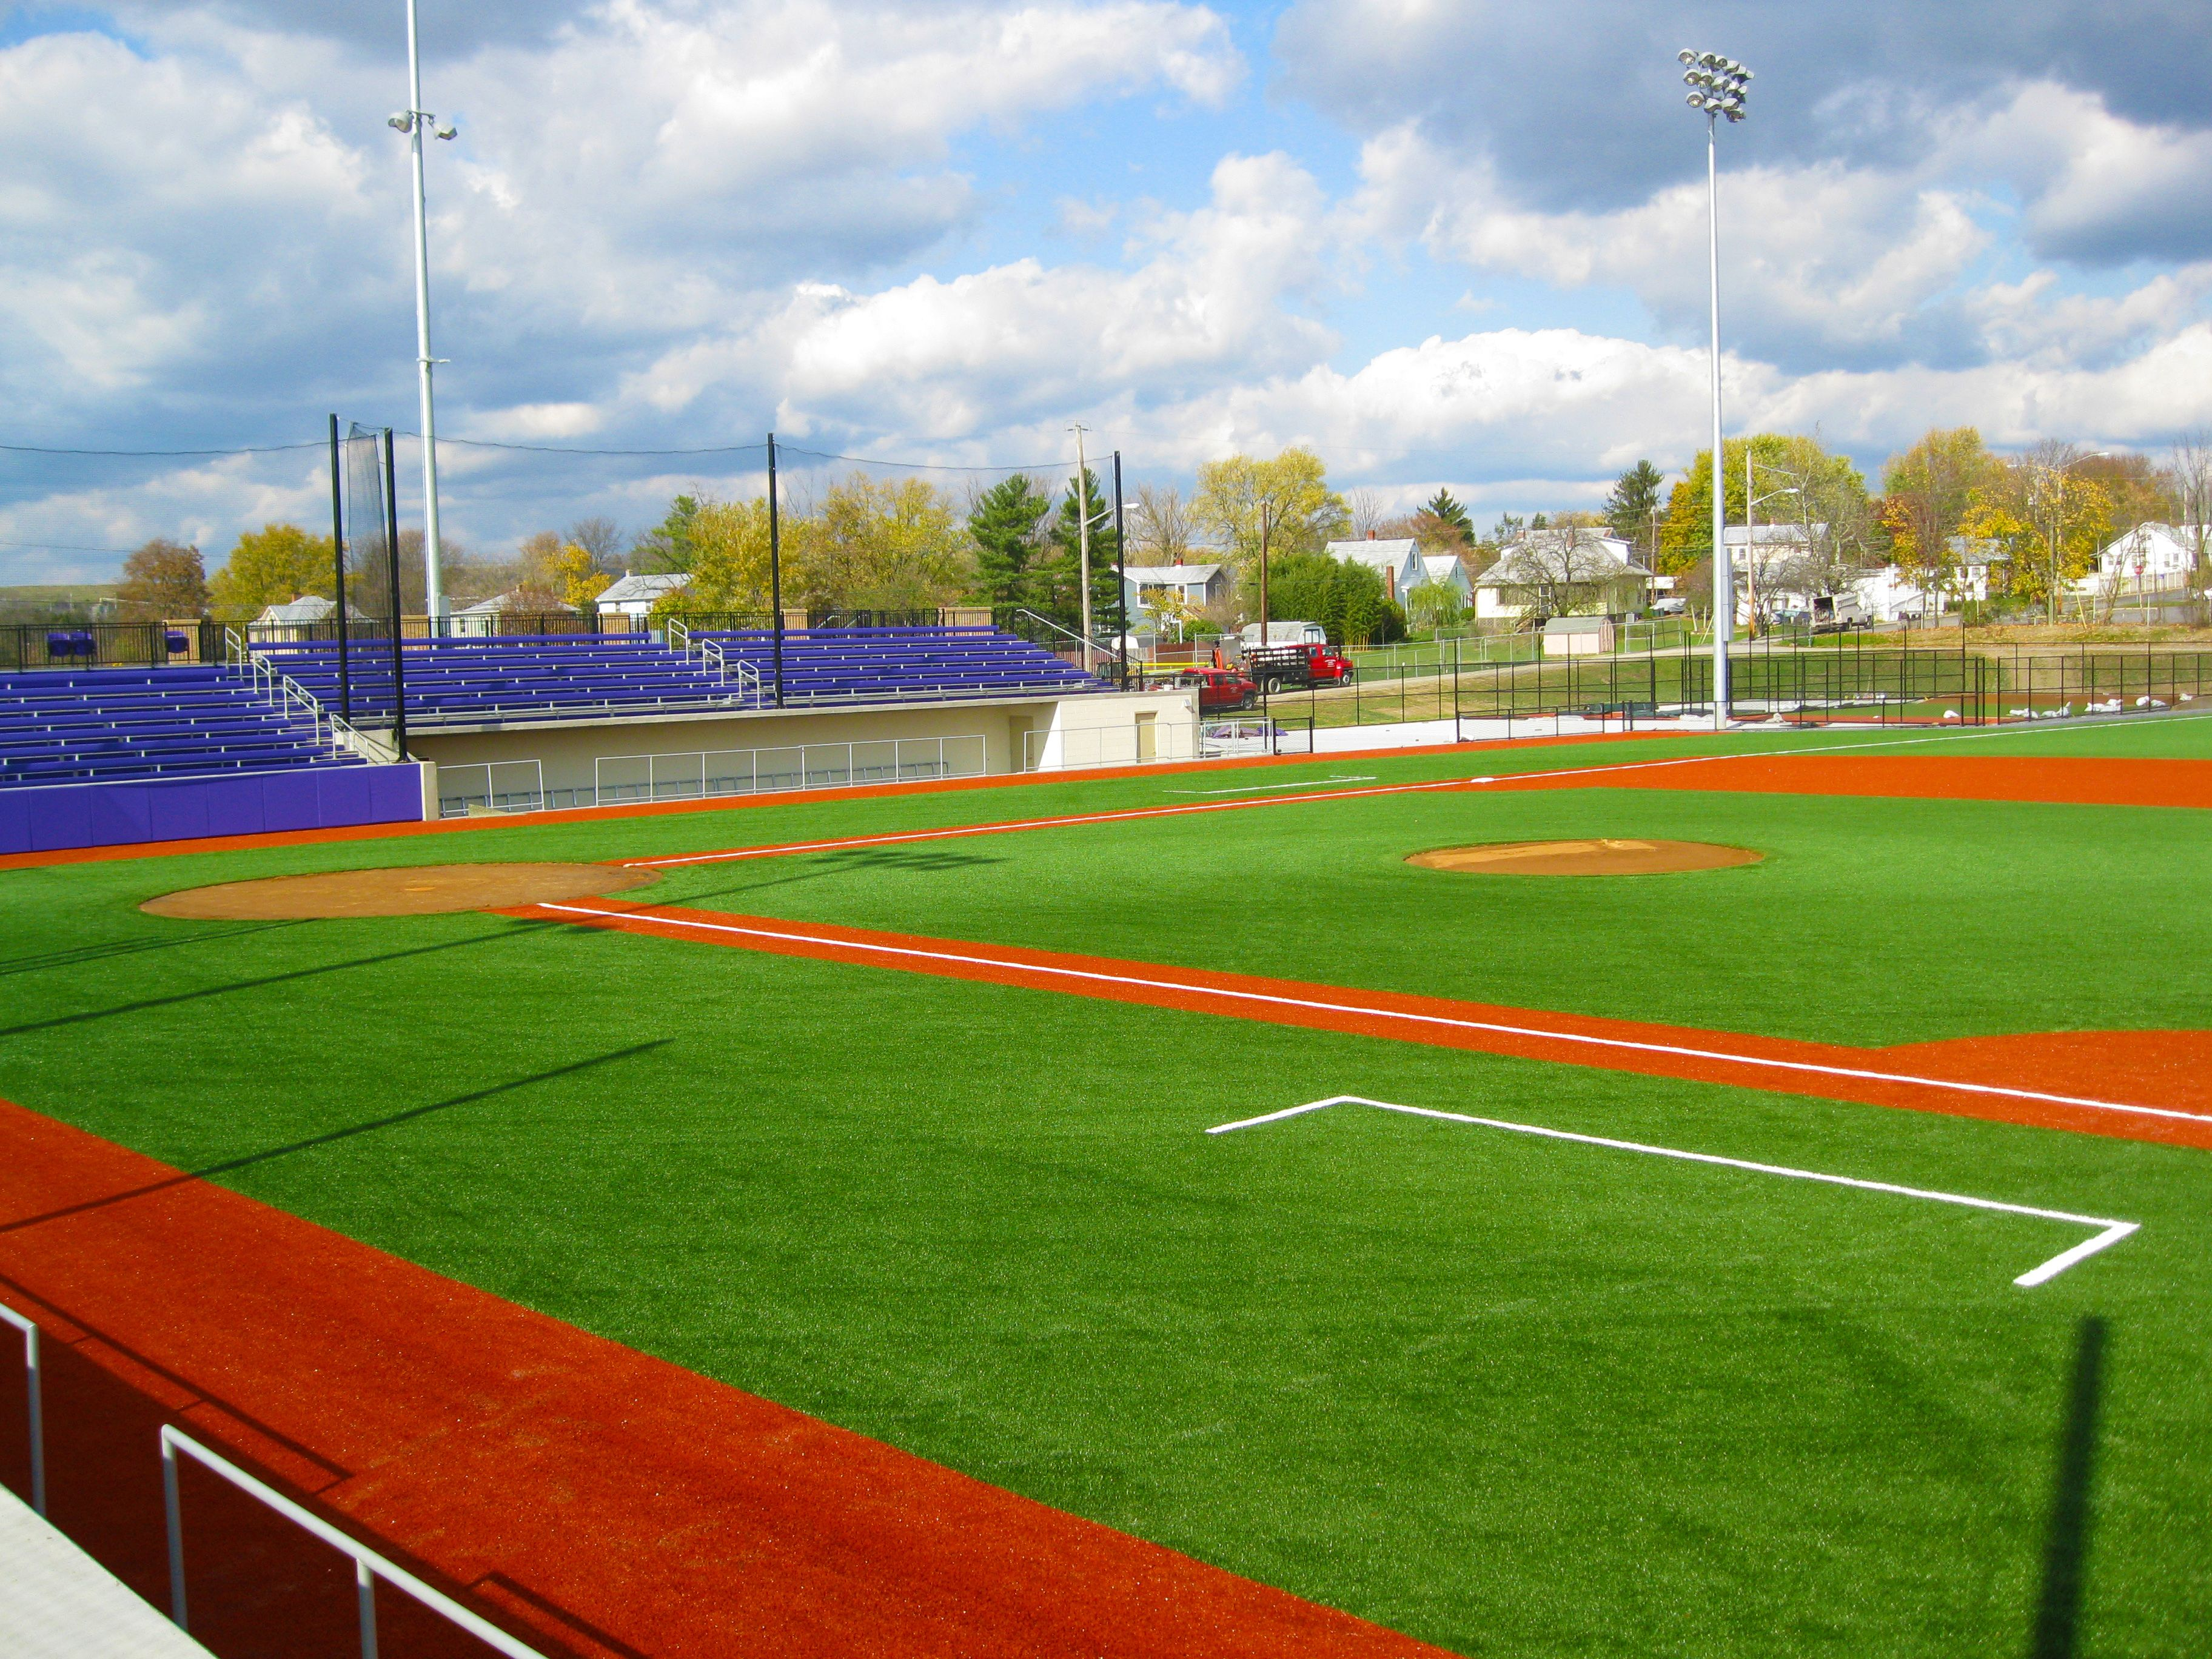 James Madison University Eagle Field 160 719 Square Feet Of Astroturf Gameday Grass 3d Installed In James Madison University Madison University Astro Turf